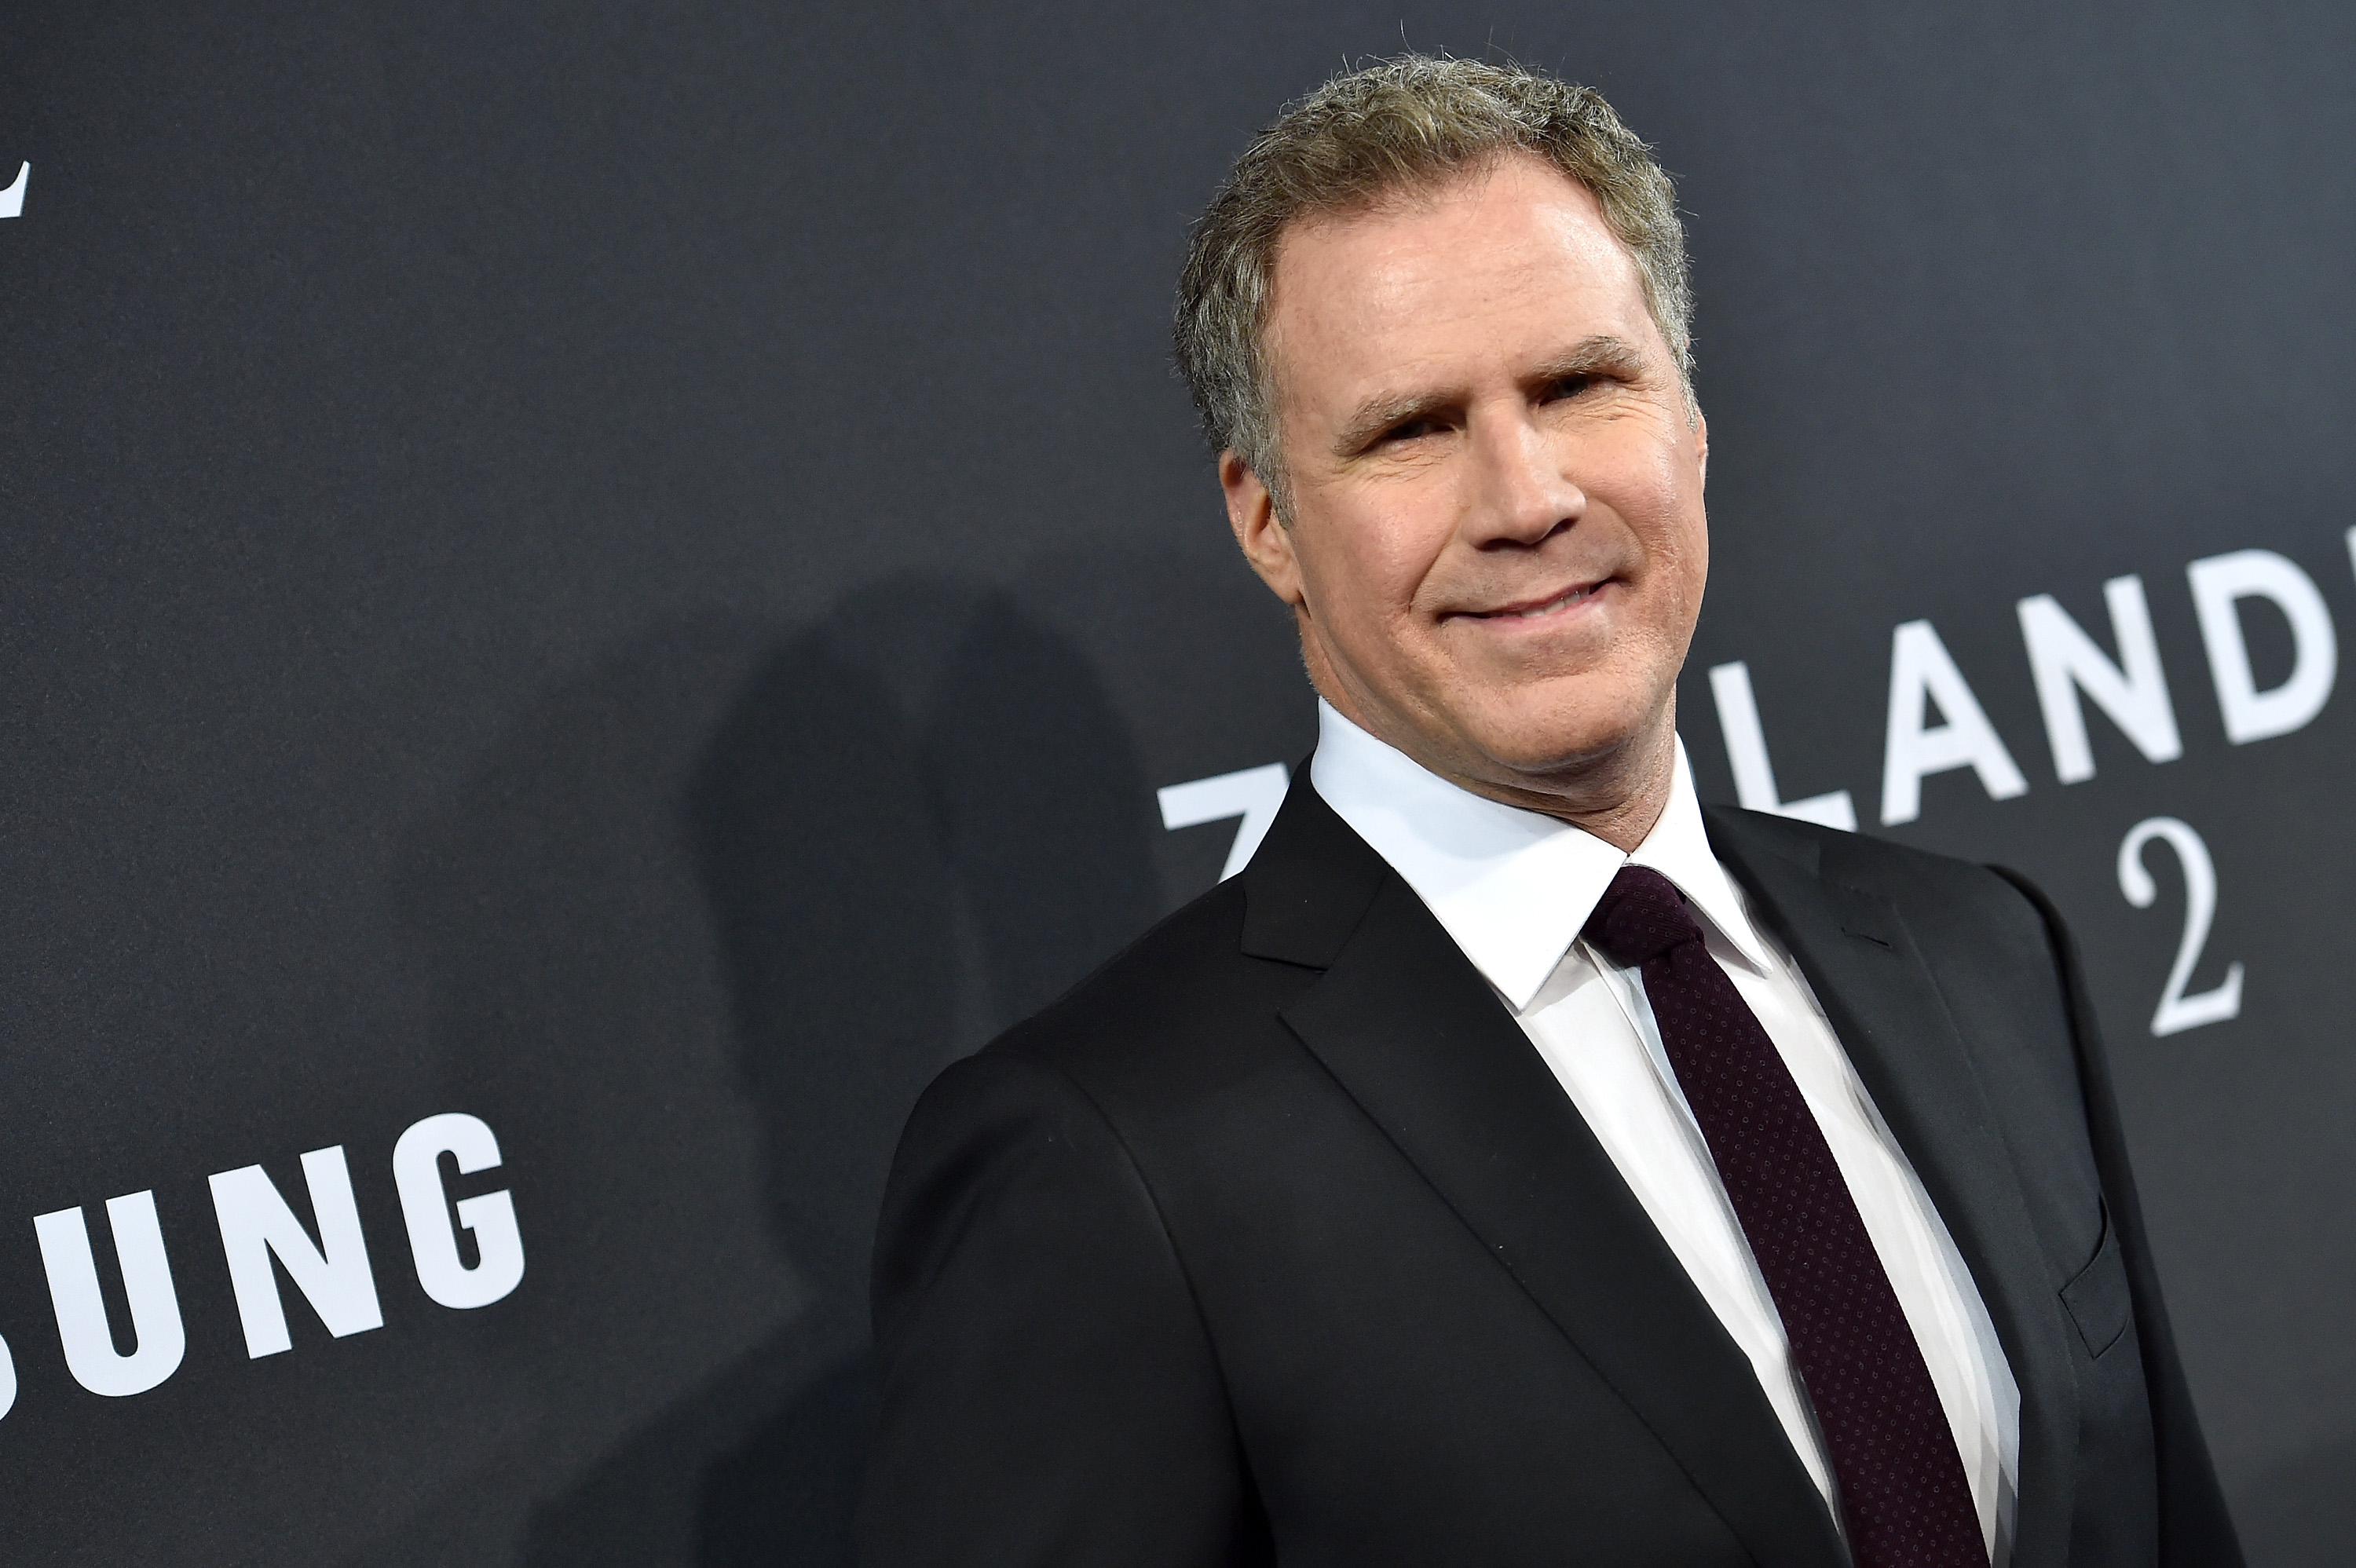 Will Ferrell Has a New Presidential Role That's Already Offending People